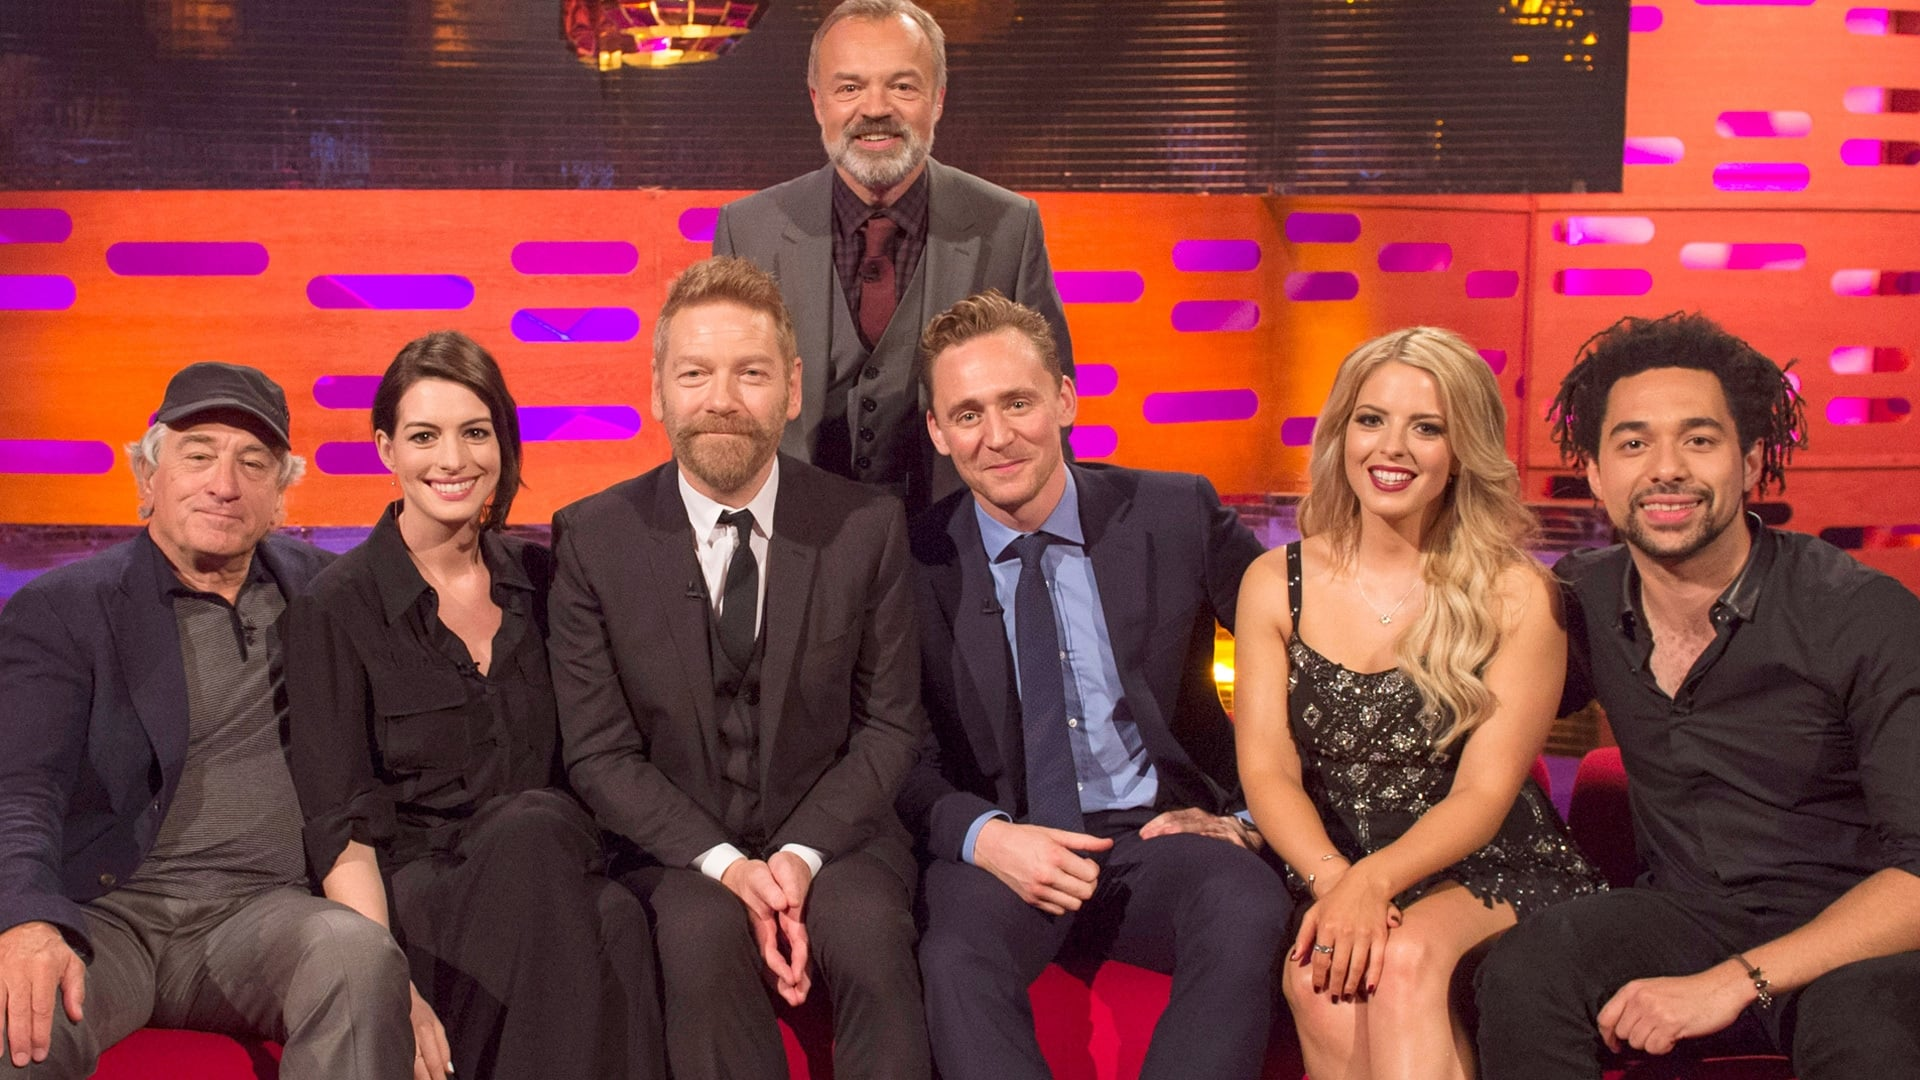 The Graham Norton Show Season 18 :Episode 2  Robert De Niro, Anne Hathaway, Sir Kenneth Branagh, Tom Hiddleston, Shires